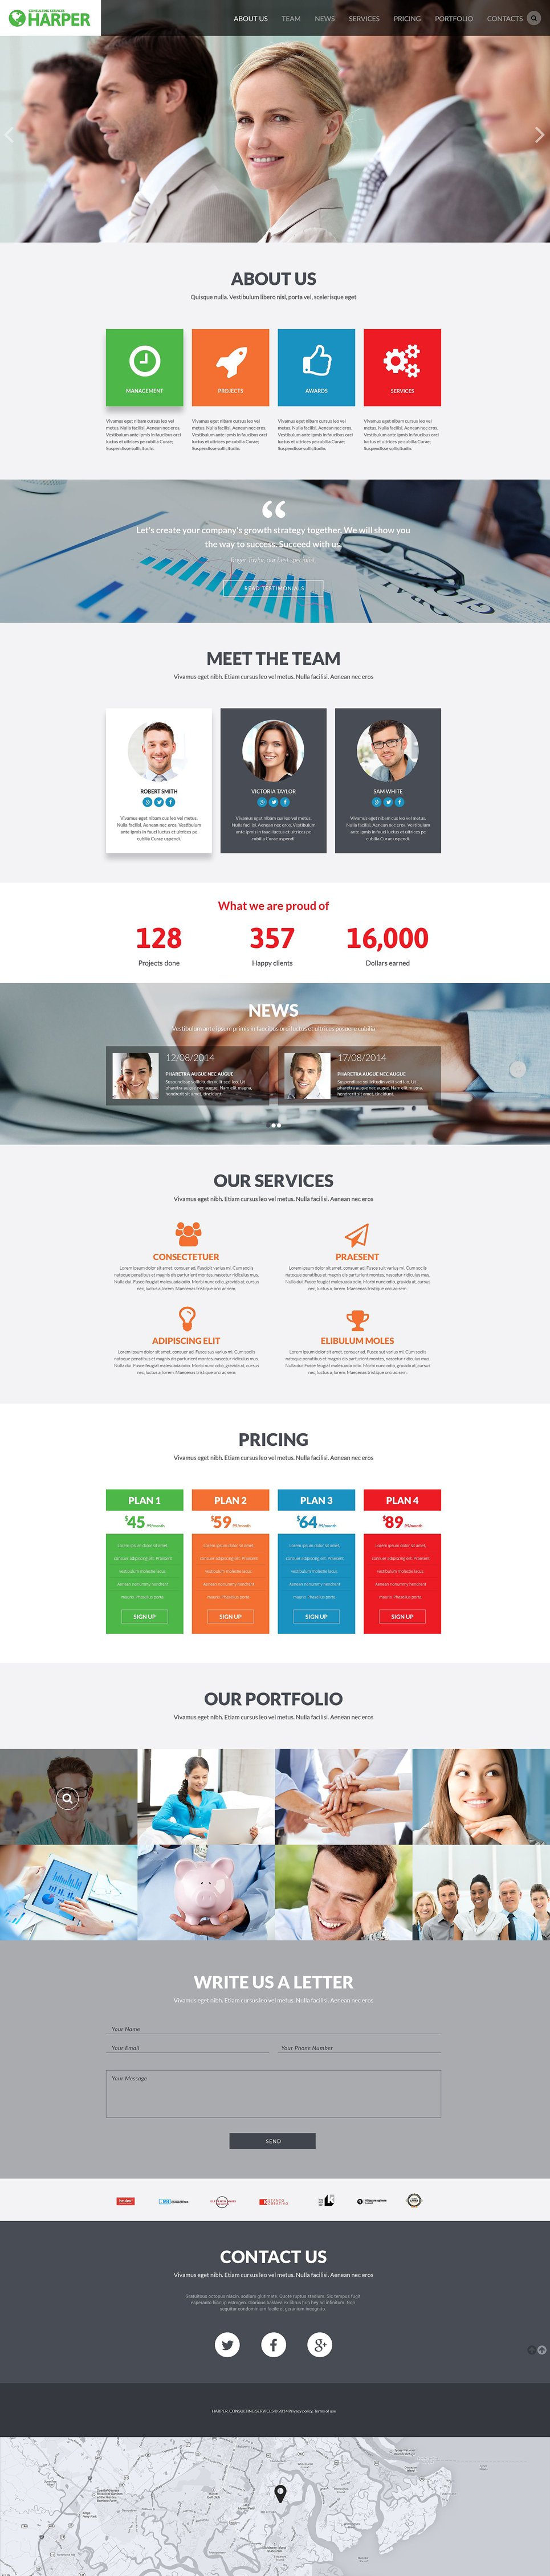 Business Consulting Agency template illustration image